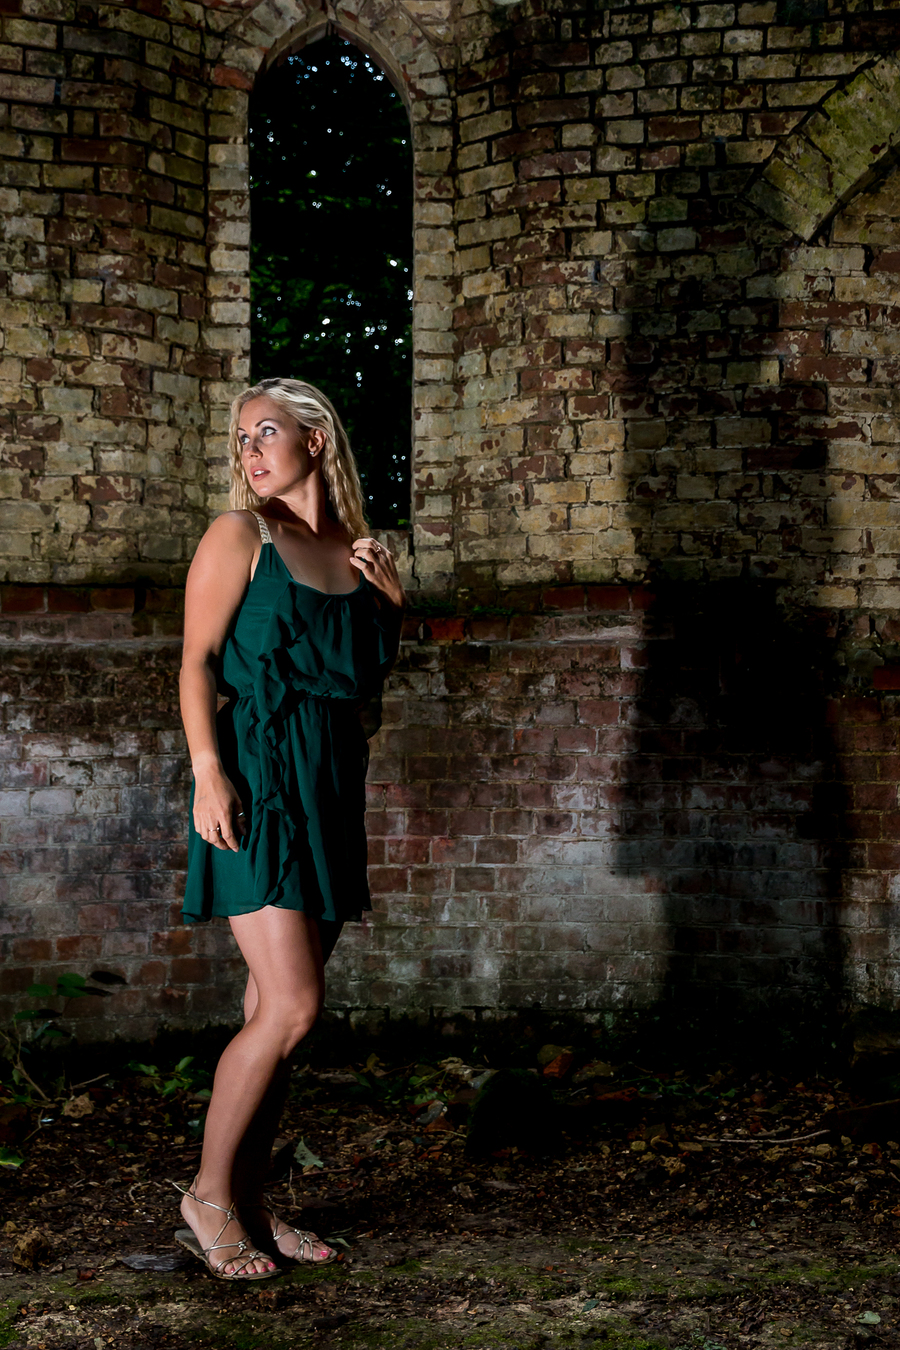 Bedham ruins / Photography by AnthonyG, Model Morgana Buxton, Makeup by Morgana Buxton, Stylist Morgana Buxton, Hair styling by Morgana Buxton / Uploaded 7th August 2017 @ 11:29 PM